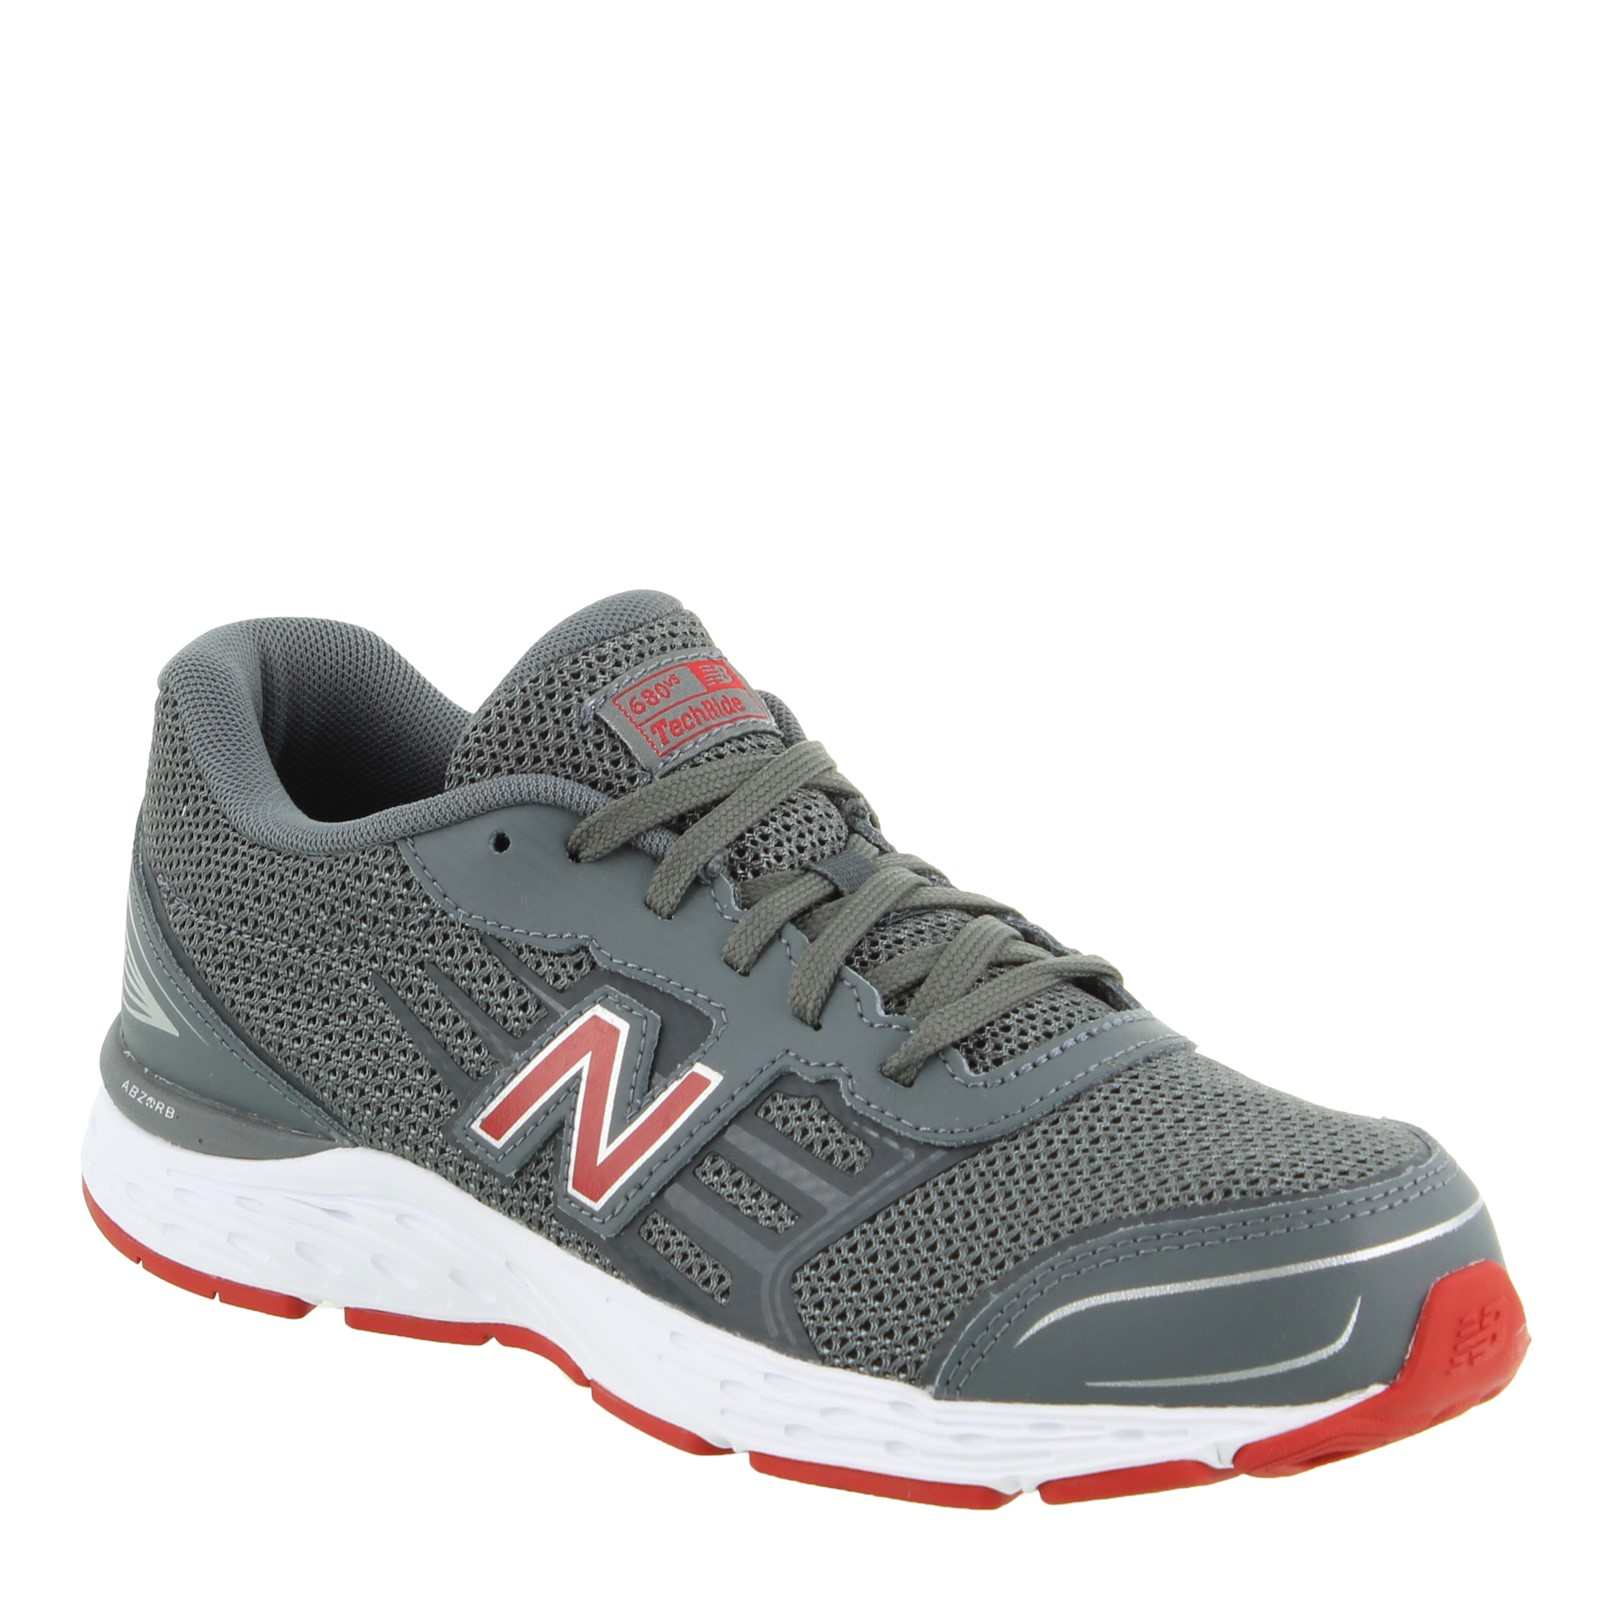 Boy's New Balance, 680 v5 Athletic Sneaker - Little Kid & Big Kid